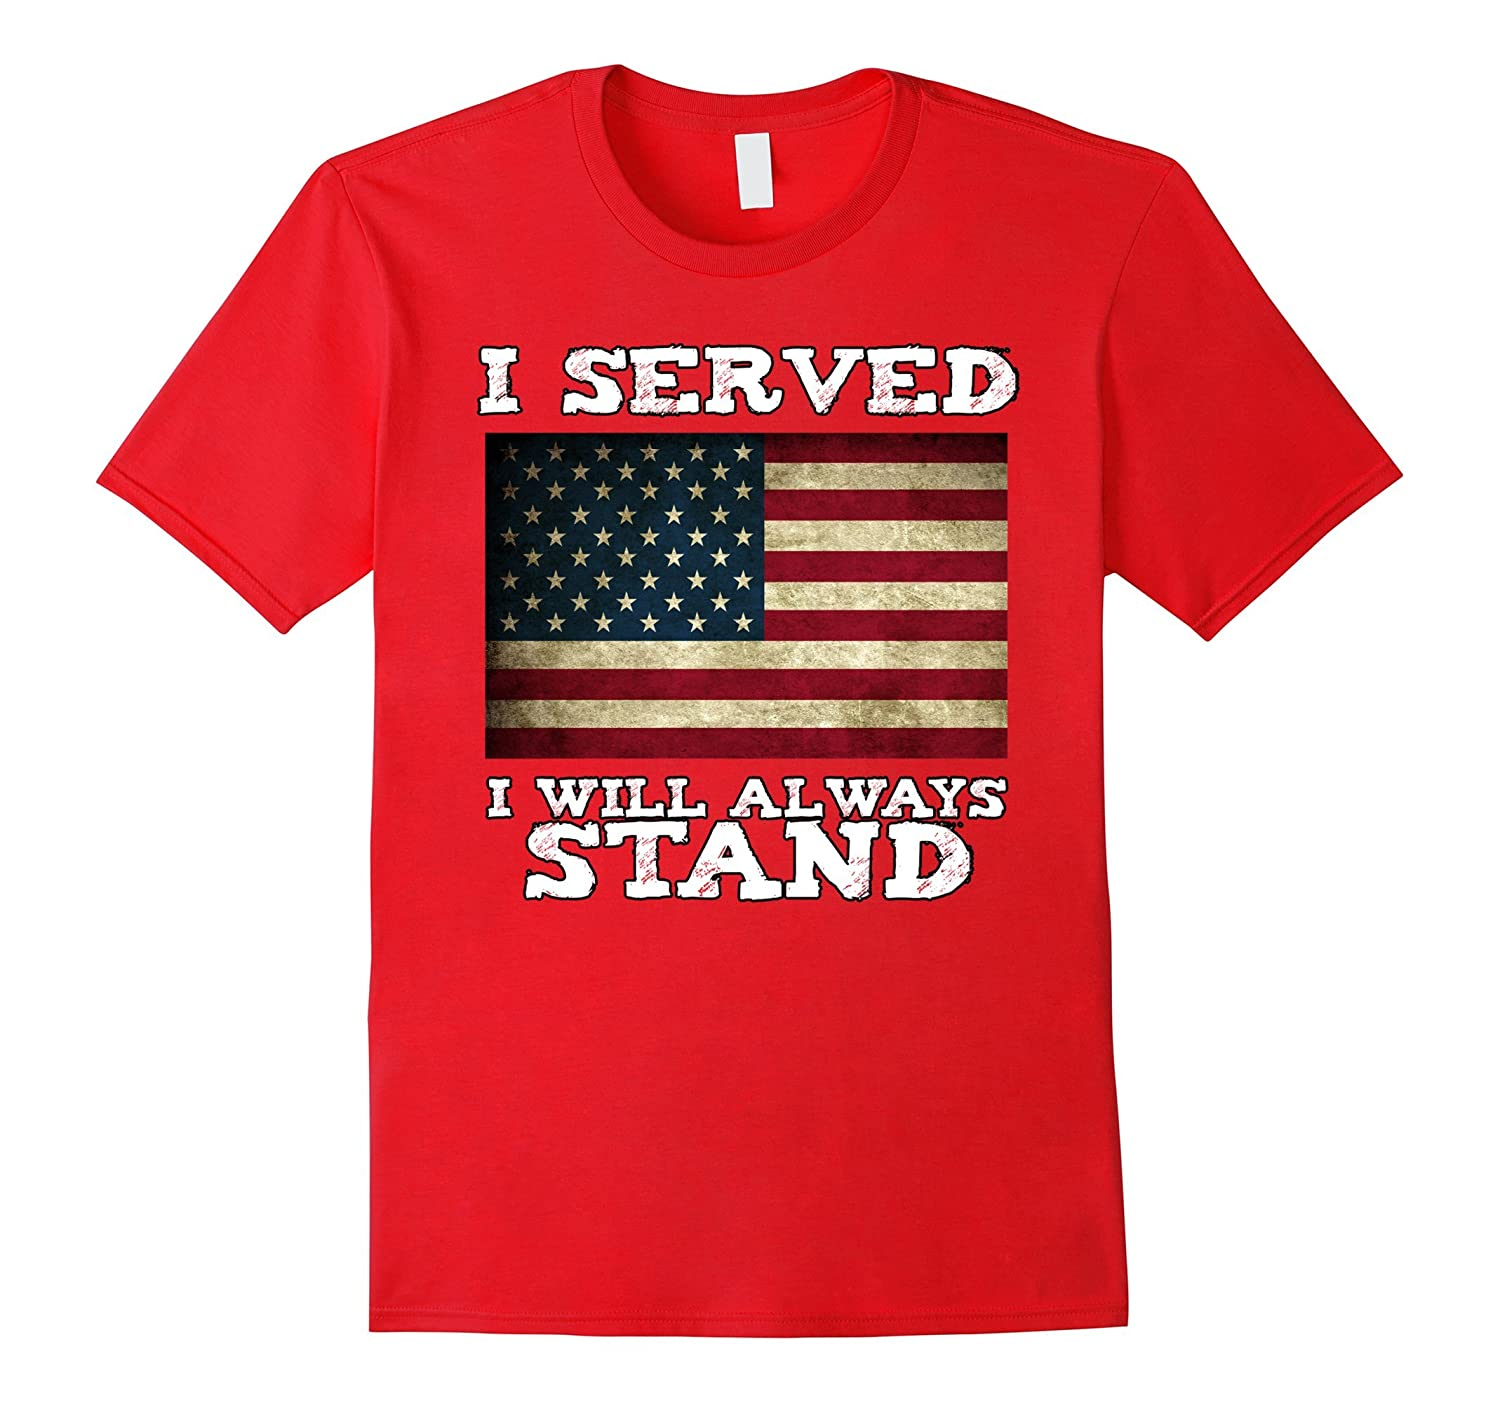 I Served I Will Always Stand for the National Anthem T-shirt-ANZ - Anztshirt 82f85a35afb9